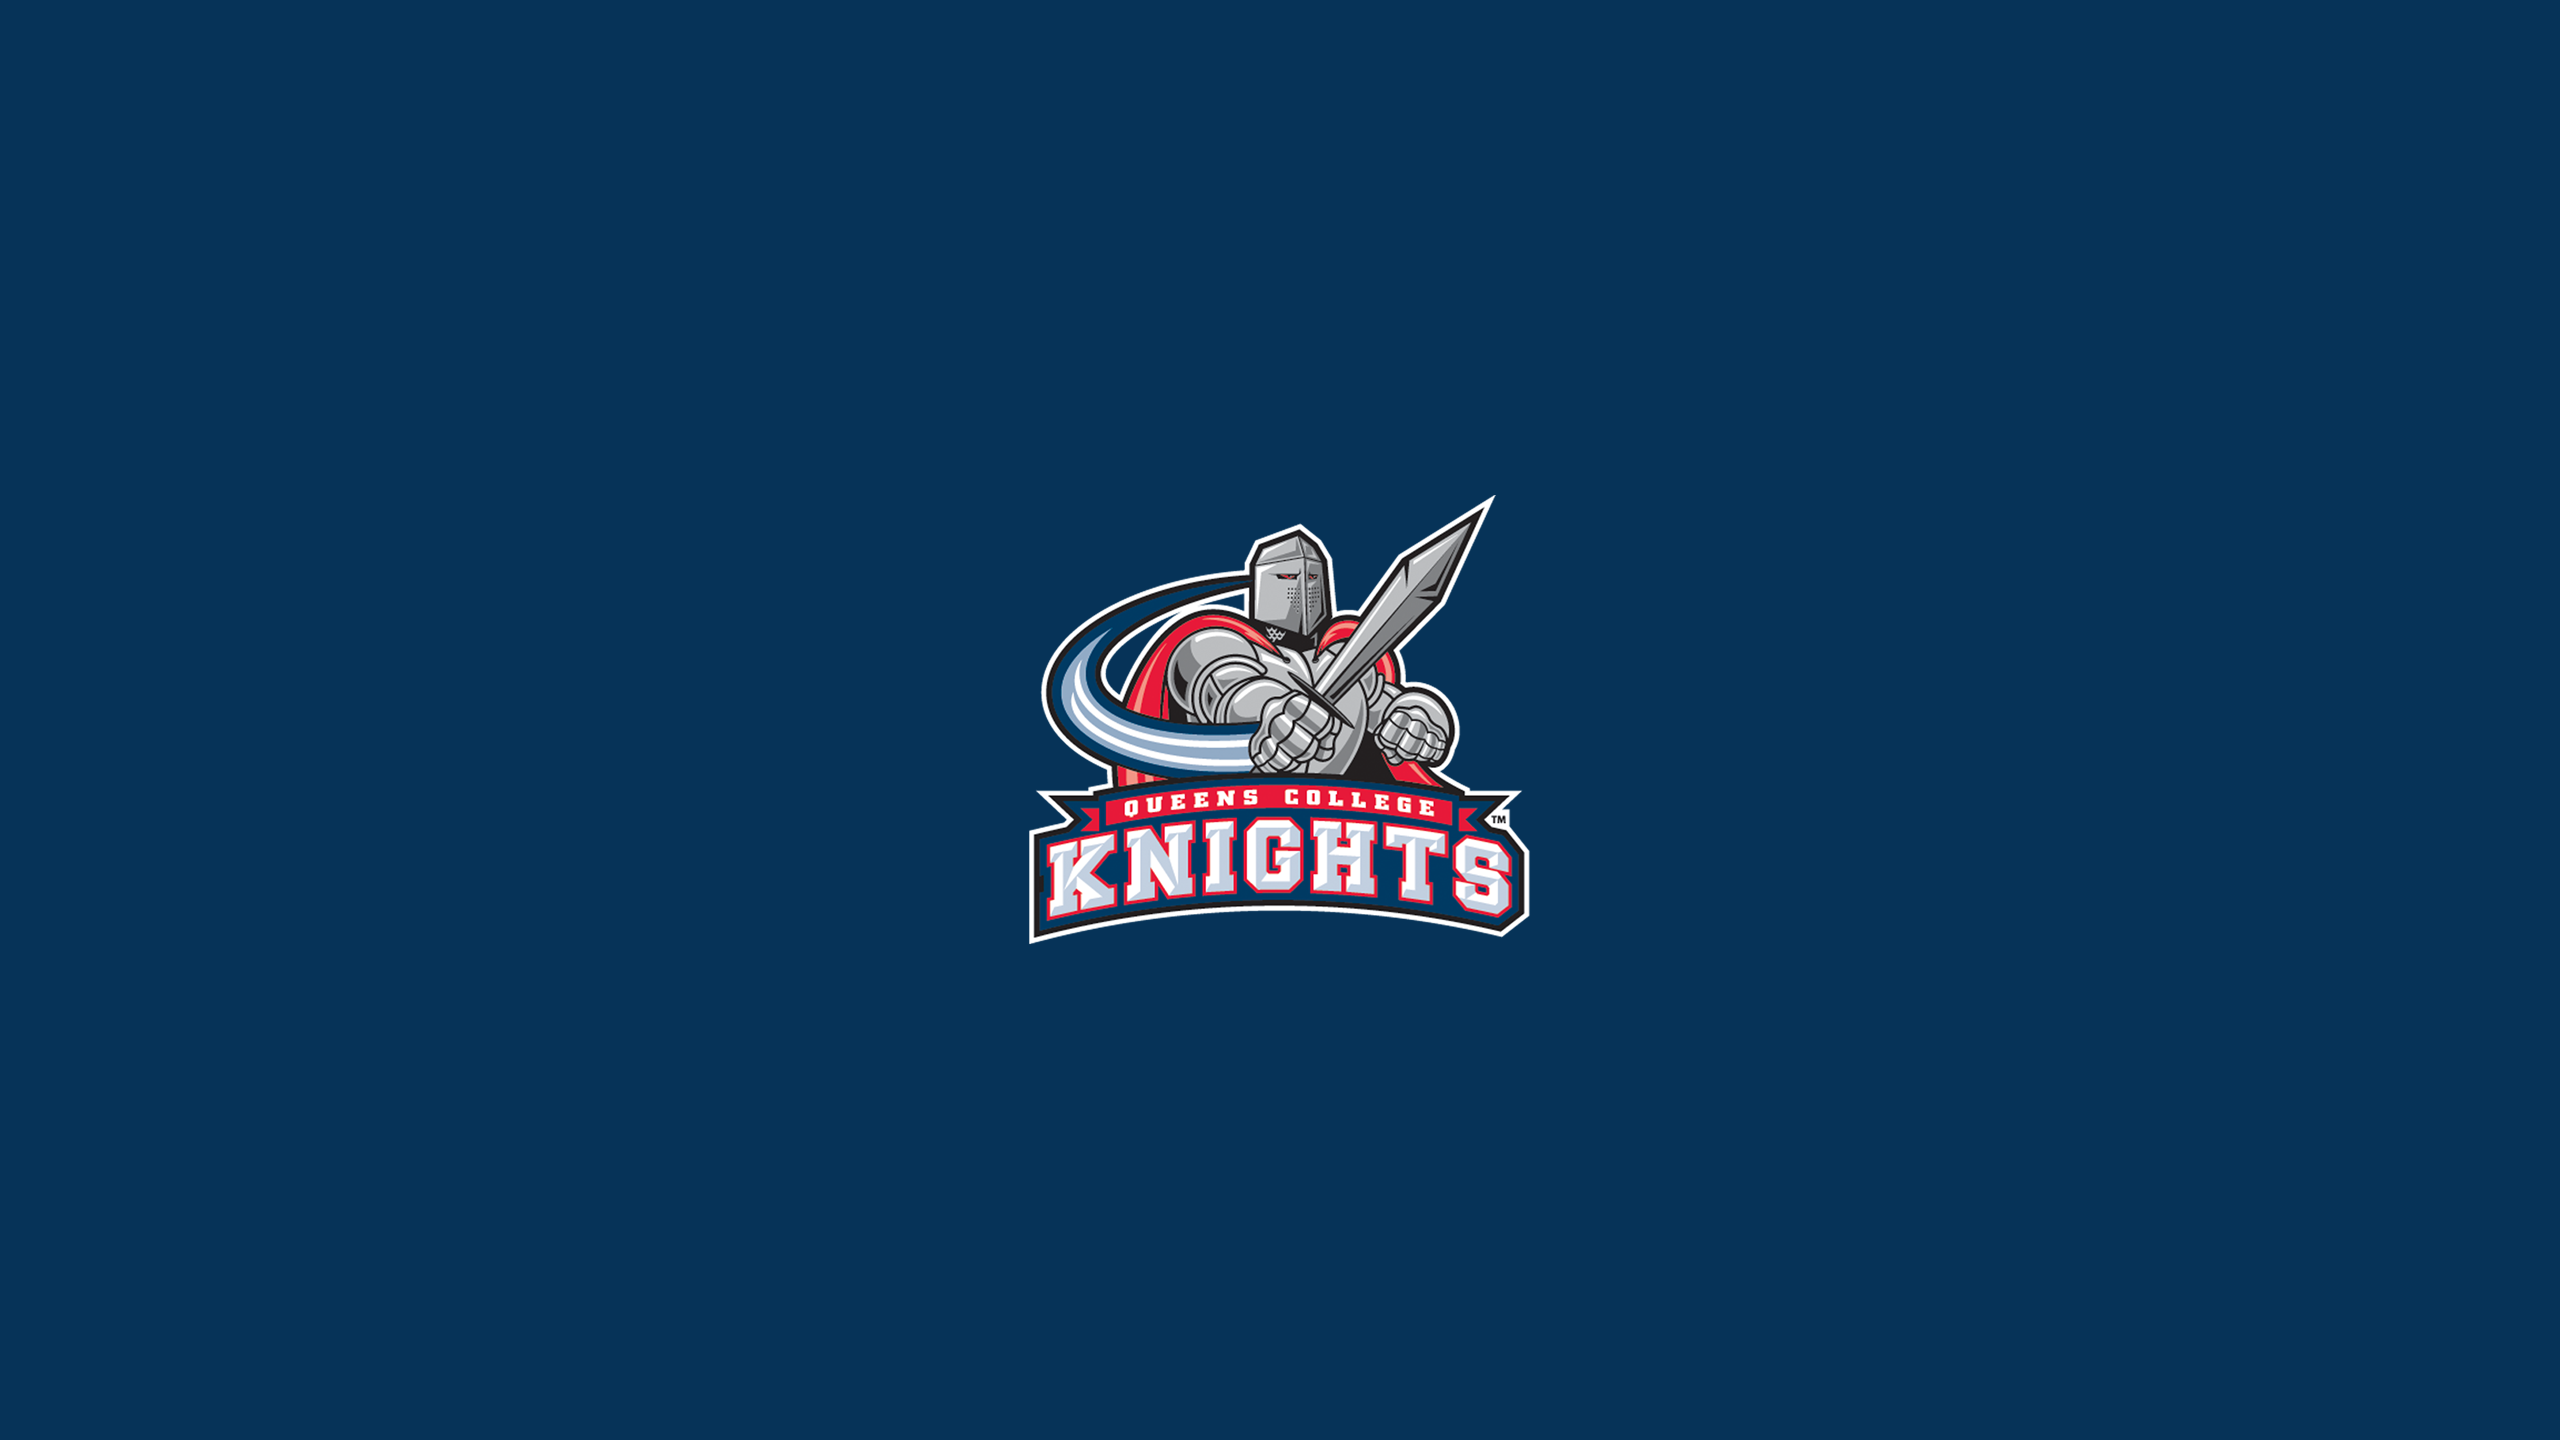 Queens (NY) College Knights